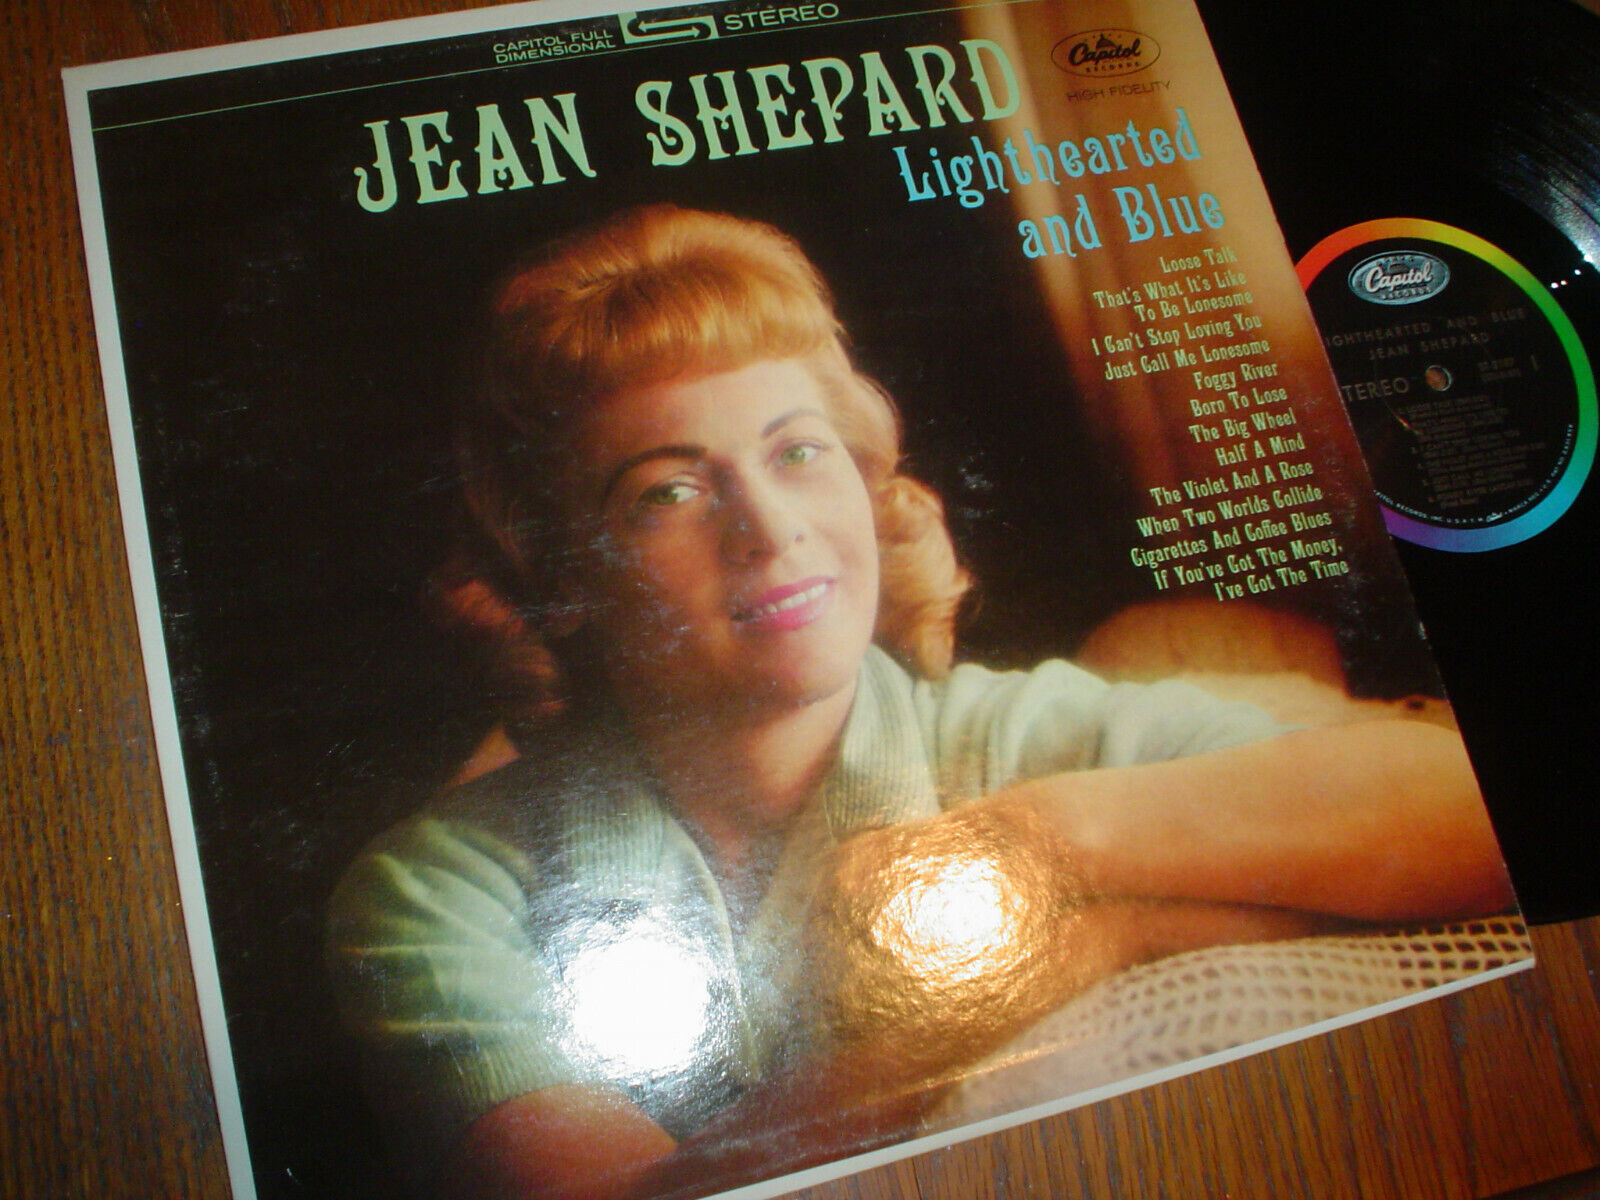 VG JEAN SHEPARD LP LIGHT HEARTED AND BLUE CAPITOL / STEREO / A1964 ISSUE - $2.37